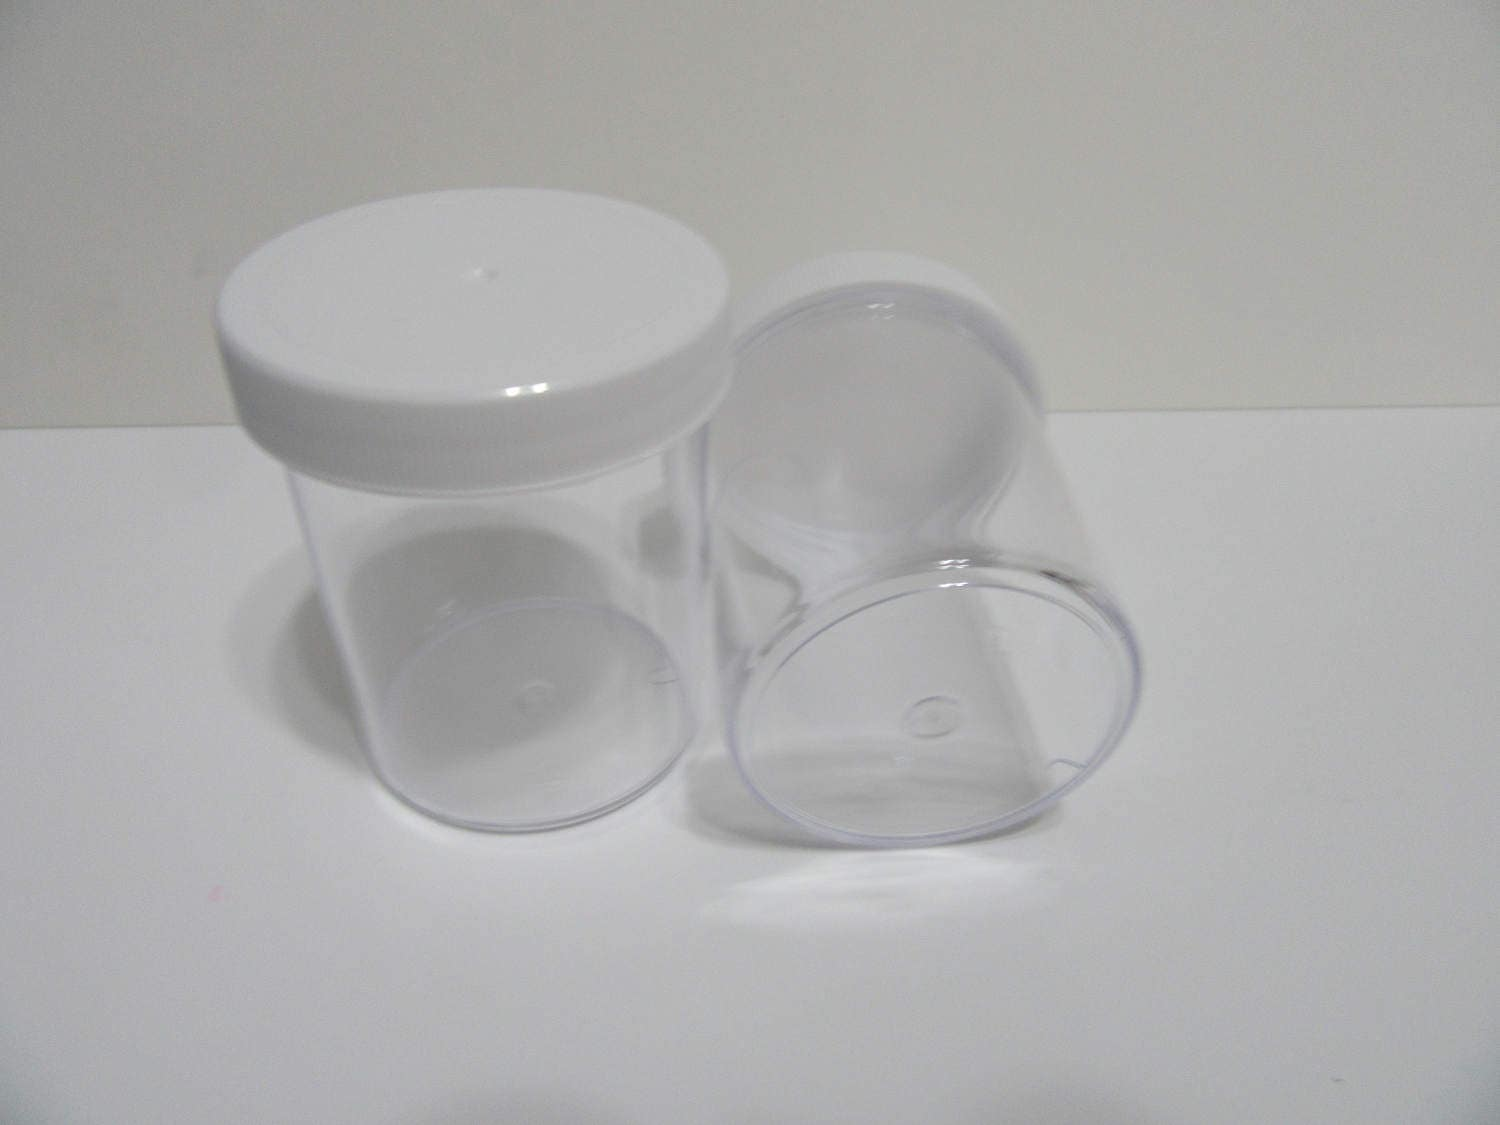 4oz Clear Plastic Containers with Screw on Lids